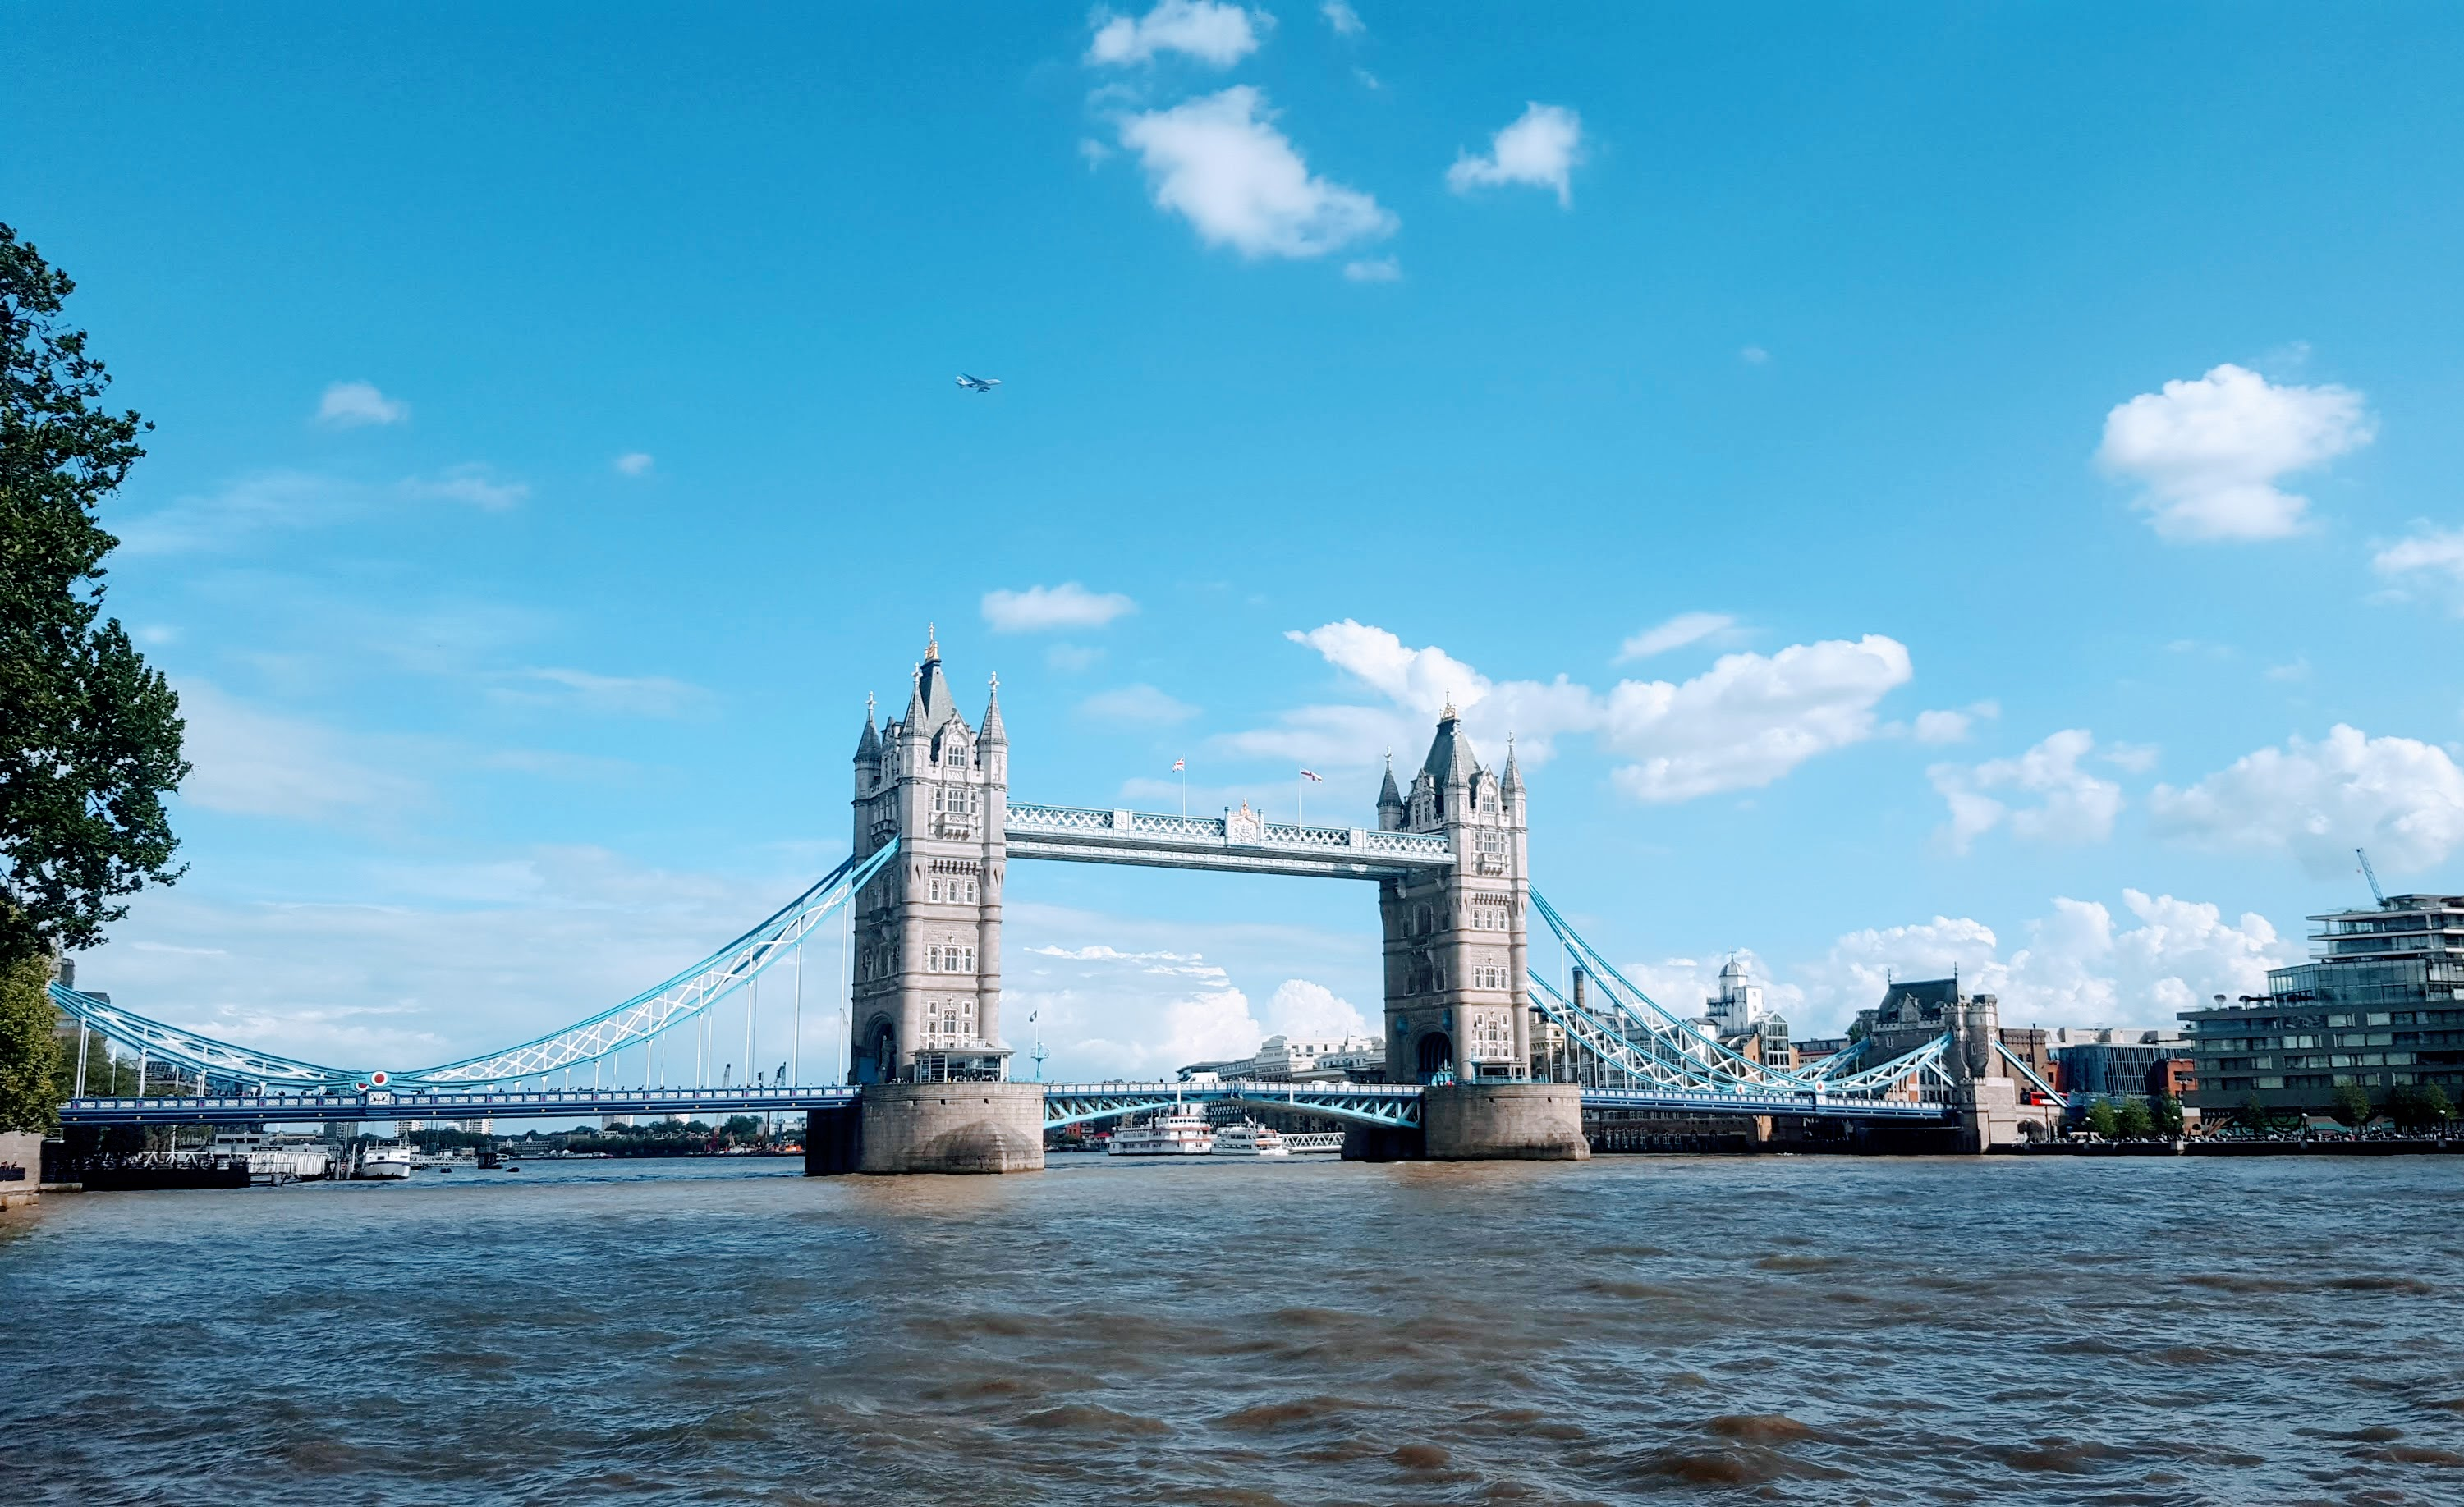 London, Greater London, England – 2 Day Trip